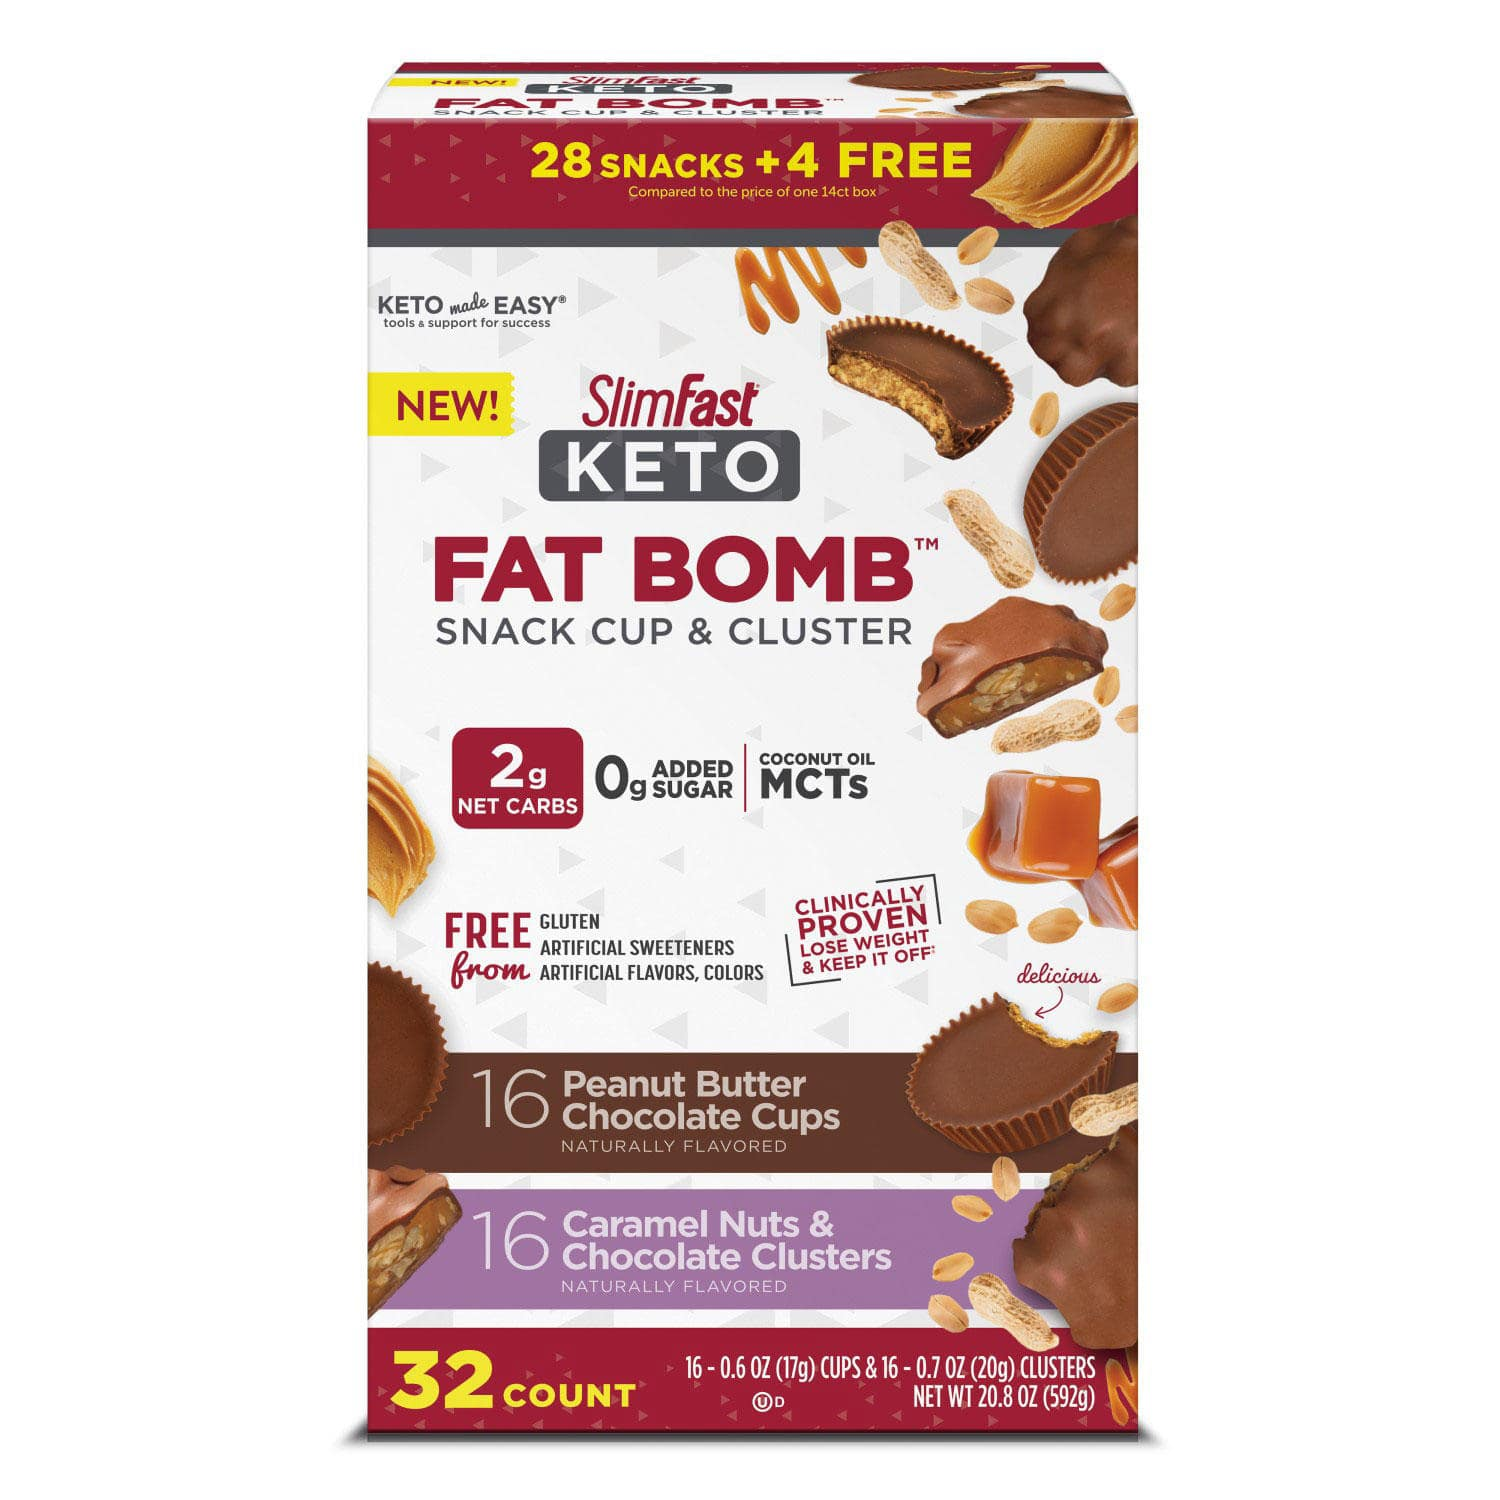 SlimFast Keto Fat Bomb, Peanut Butter Cup and Caramel Nut Clusters, Variety Pack (32 ct.) $15.87